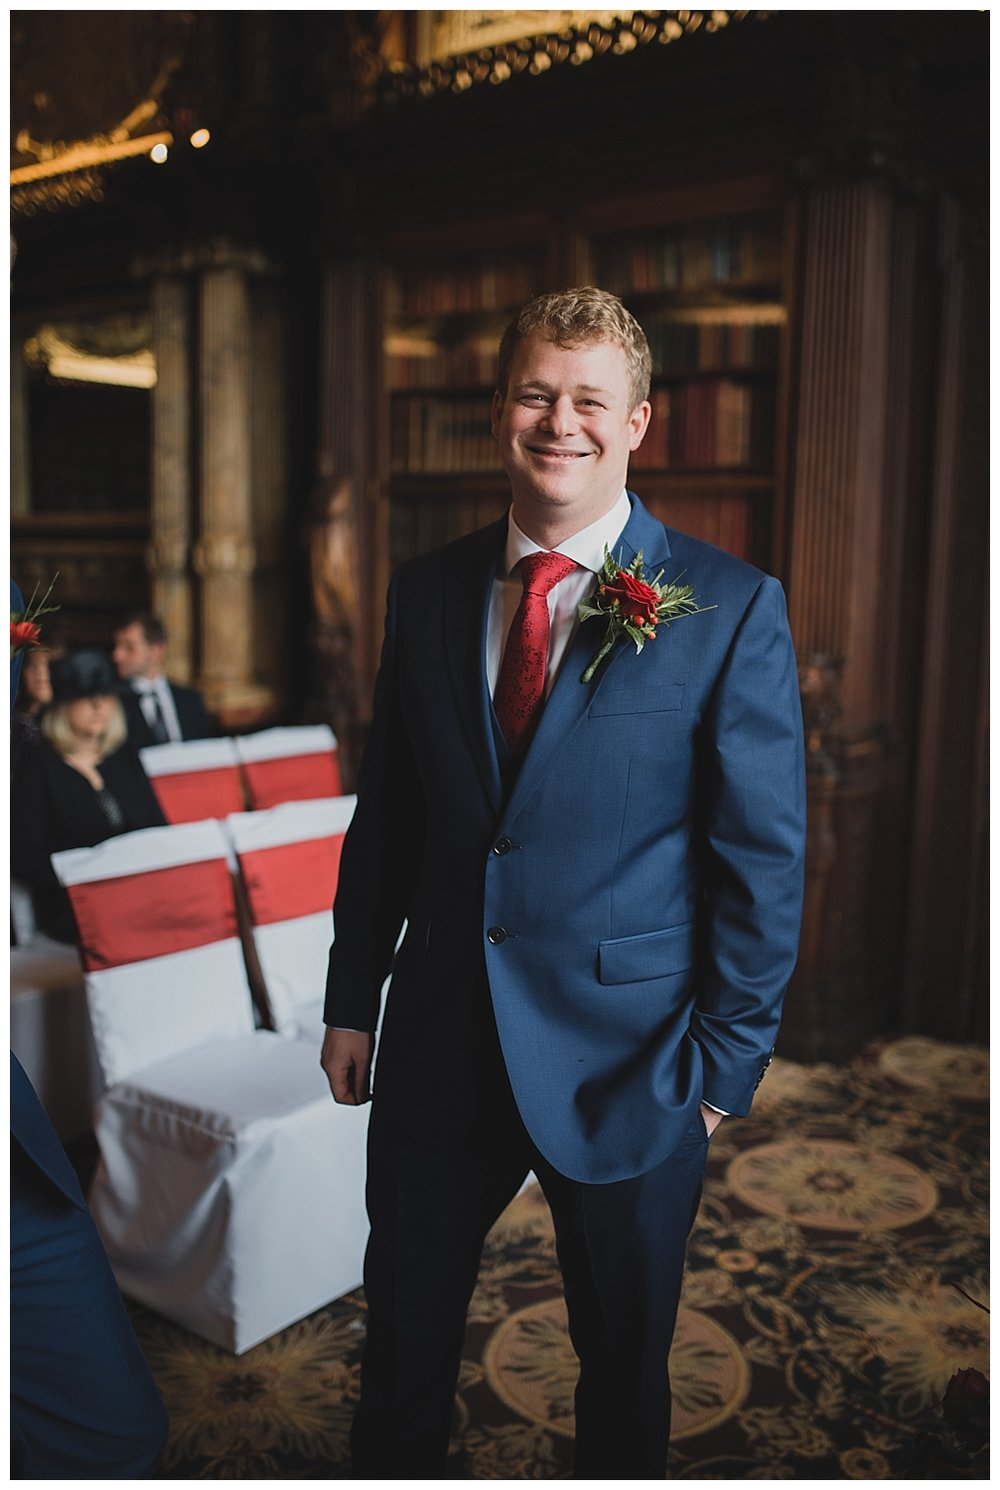 Navy suit and red buttonhole fro a Crewe Hall wedding.